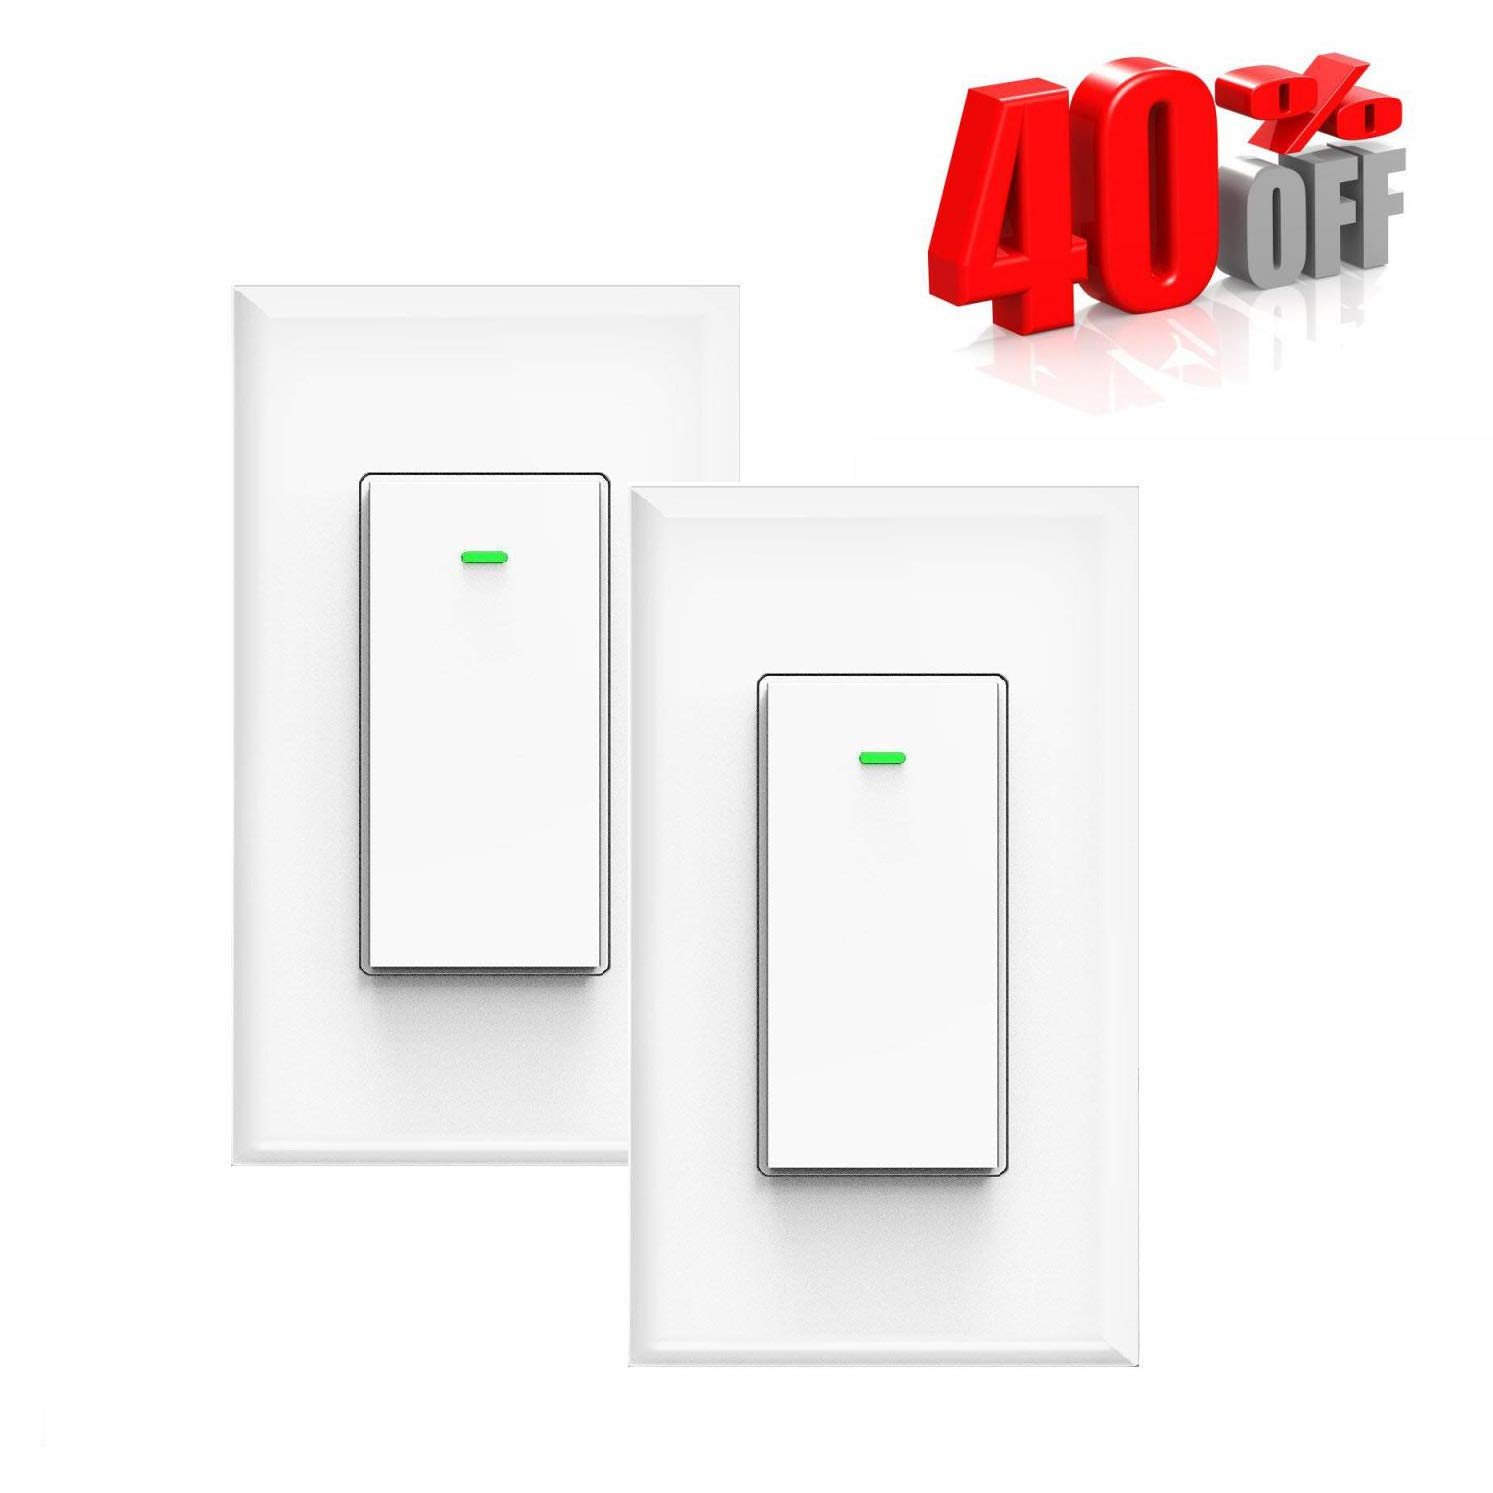 40% off Smart Wifi Light Switch,Wireless Remote Control, Neutral Wire Required,Overload Protection 15A No Hub Timing Function,Compatible with Amazon Alexa,Google Home, IFTTT,Physical Button (2 PACK)